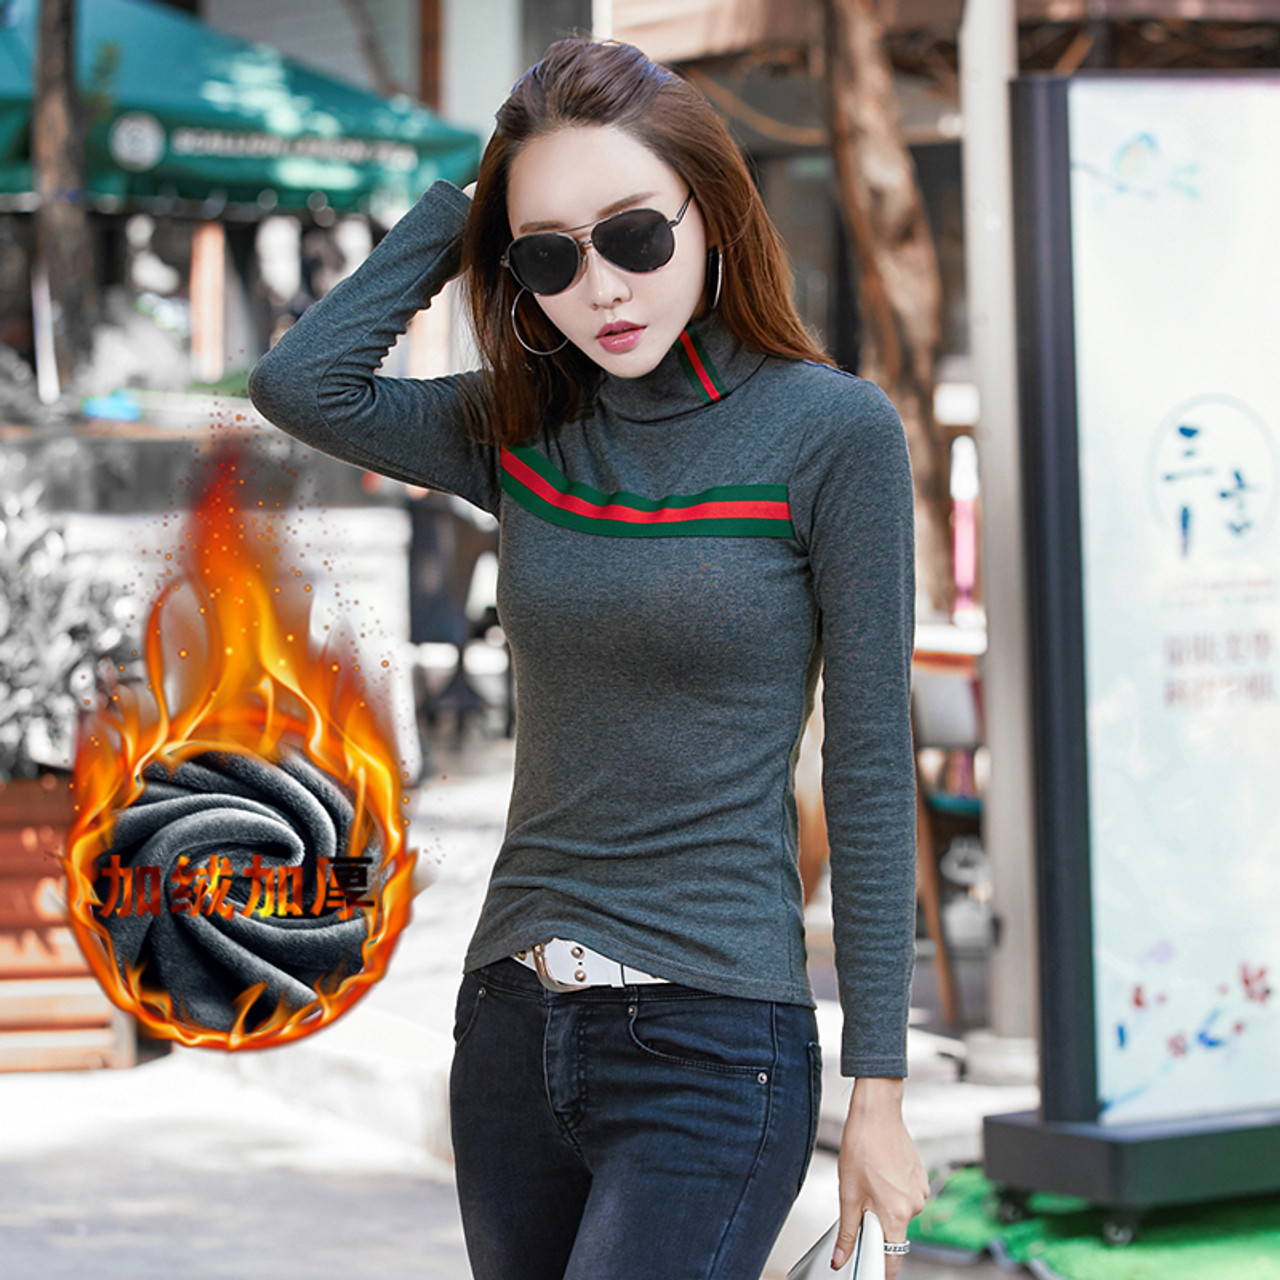 87bcbb11ec323 ... Women Winter T Shirt Warm Basic Tees Solid Turtleneck Long Sleeve Slim  Shirts Ladies Plus Size ...